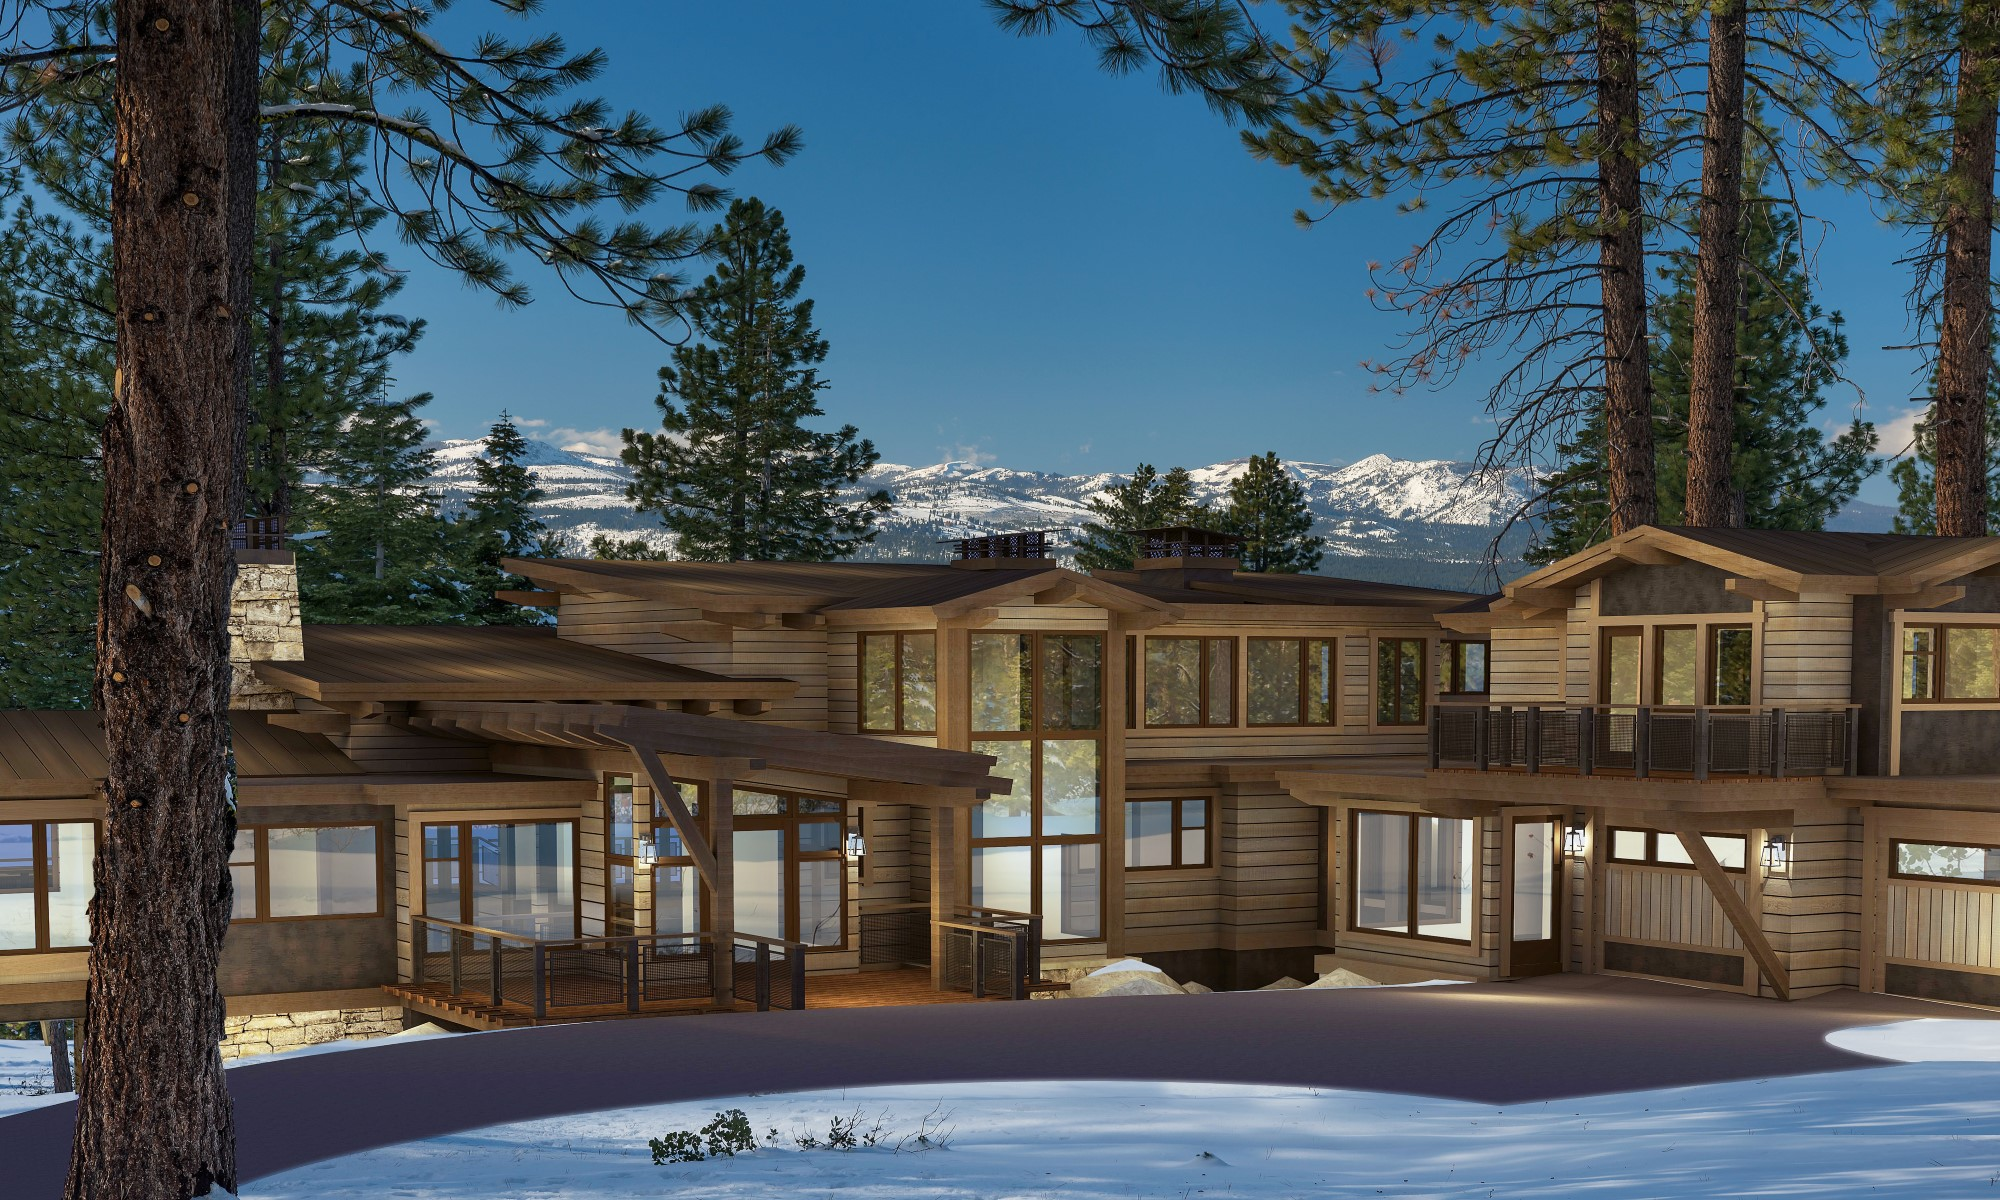 Single Family Home for Active at 19145 Glades Place Truckee, California 96161 United States